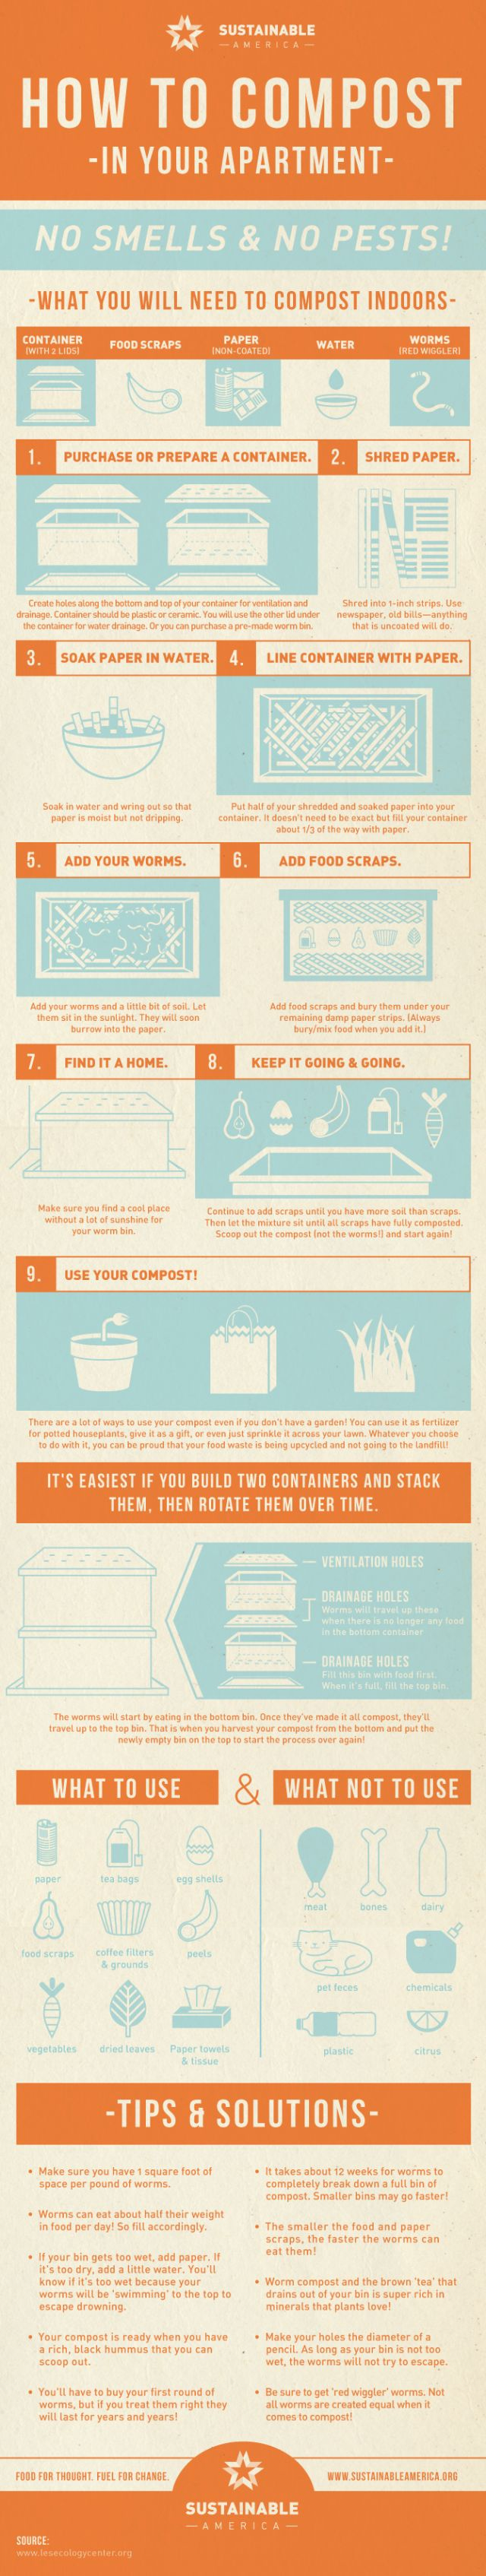 how to compost in an apartment